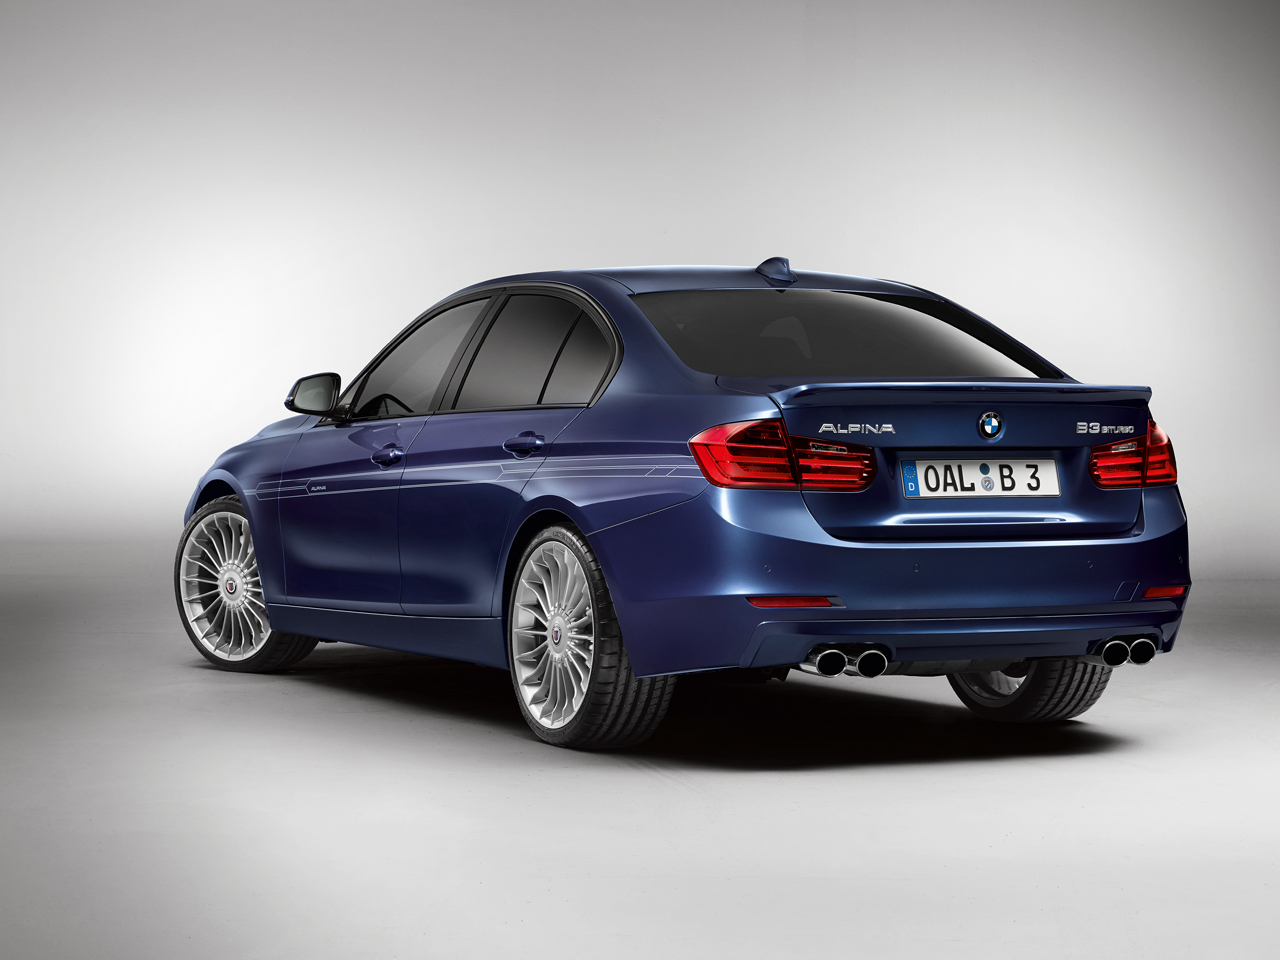 alpina reveals full info on b3 biturbo autoevolution. Black Bedroom Furniture Sets. Home Design Ideas